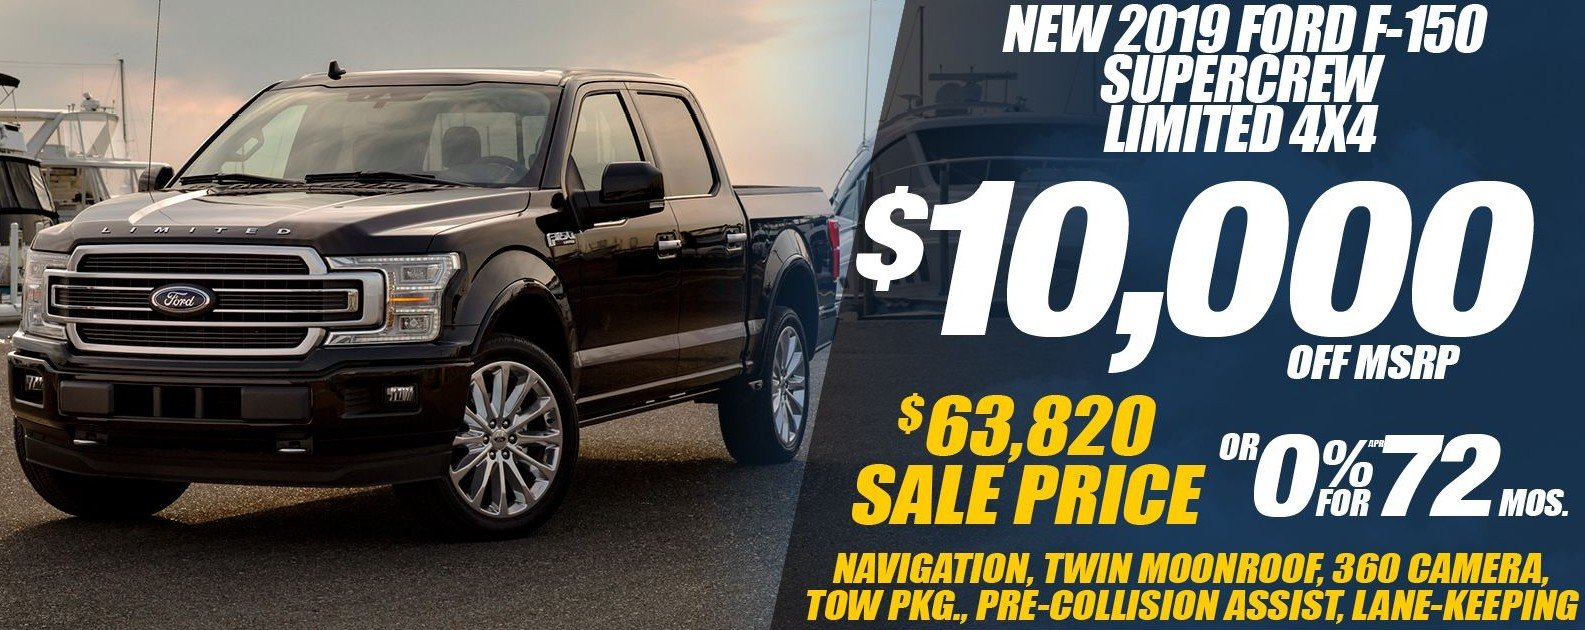 Special offer on 2019 Ford F-150 NEW 2019 FORD F-150 LIMITED 4X4 SPECIAL IN DALLAS